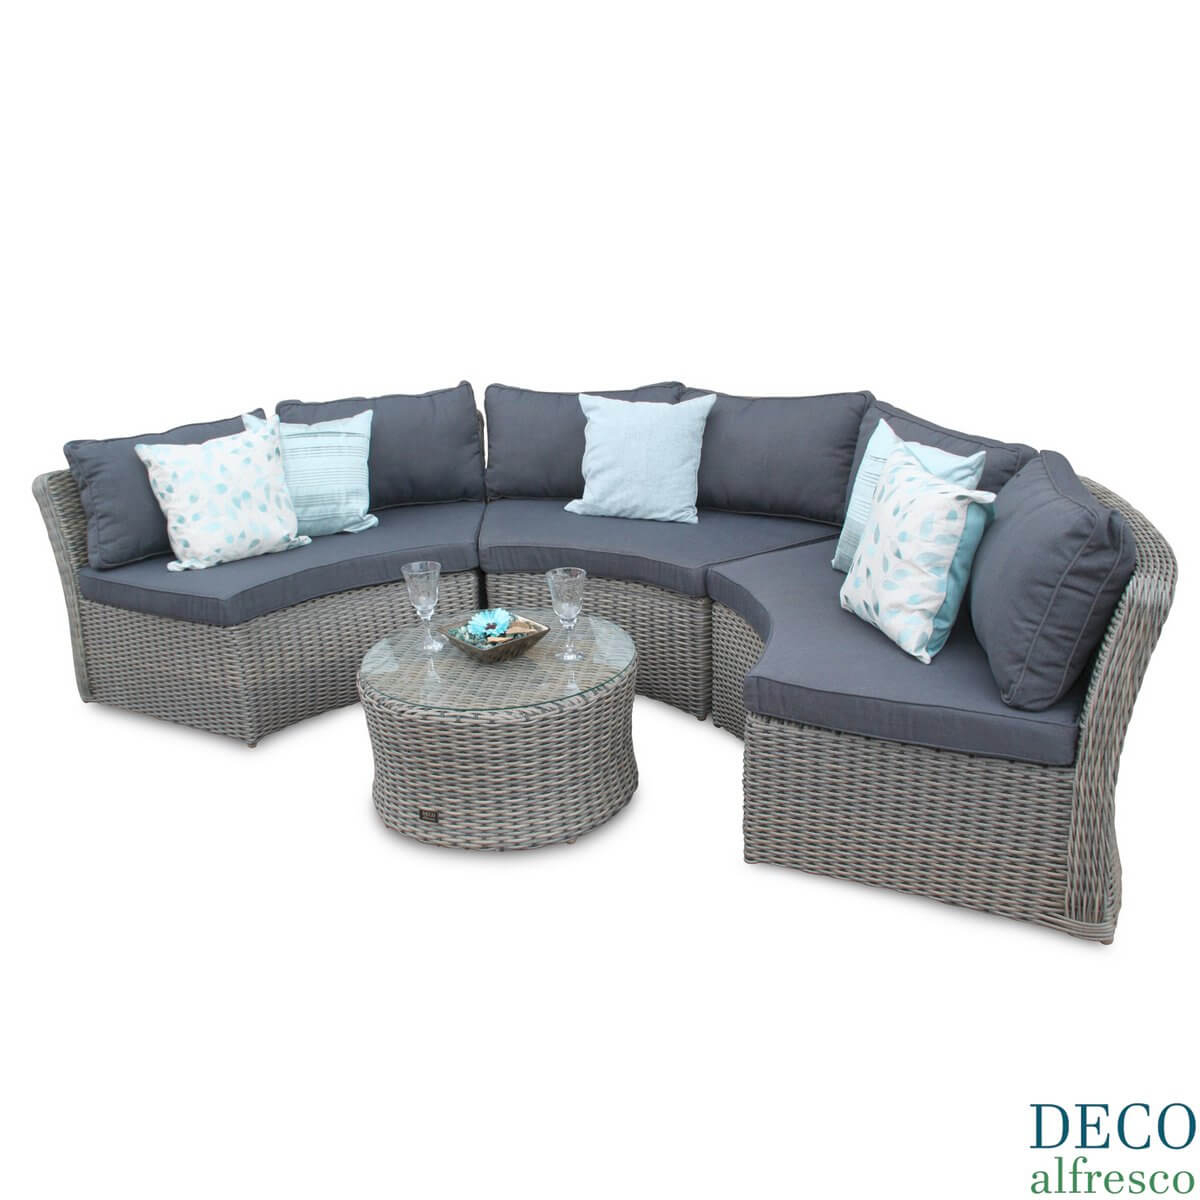 Half Moon Rattan Outdoor Furniture Sofa Set - Natural Deco Alfresco with regard to Natural Cane Media Console Tables (Image 13 of 30)